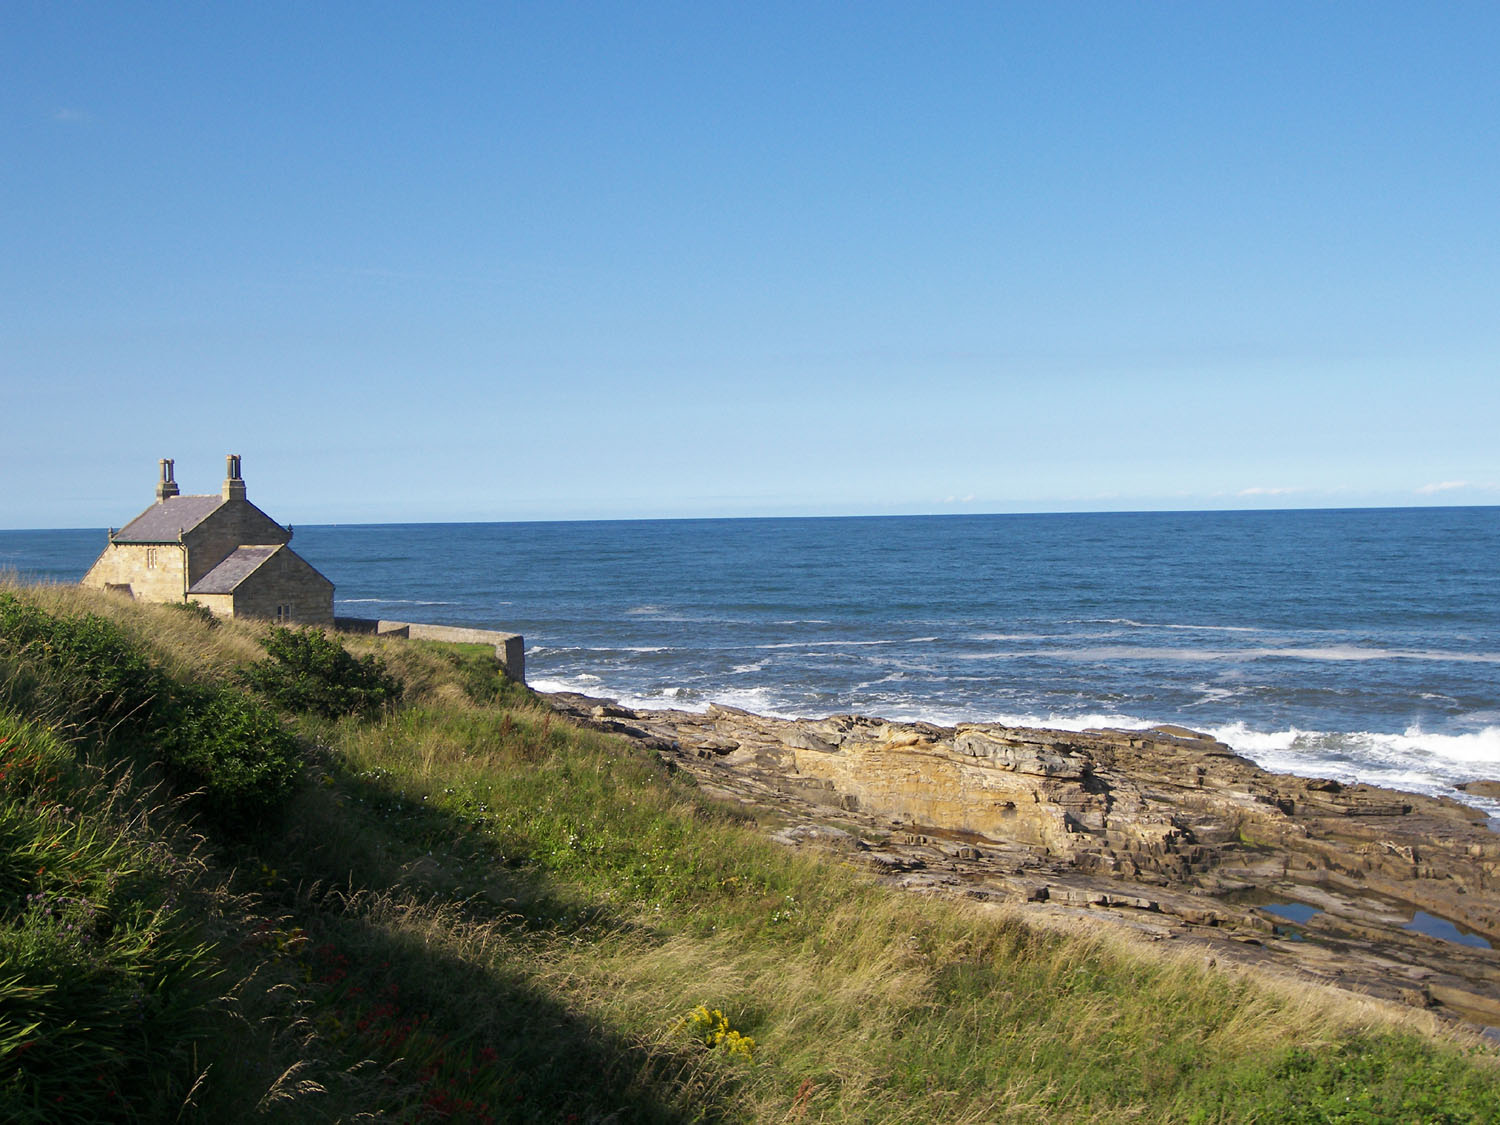 A view of The Bathing House at Howick